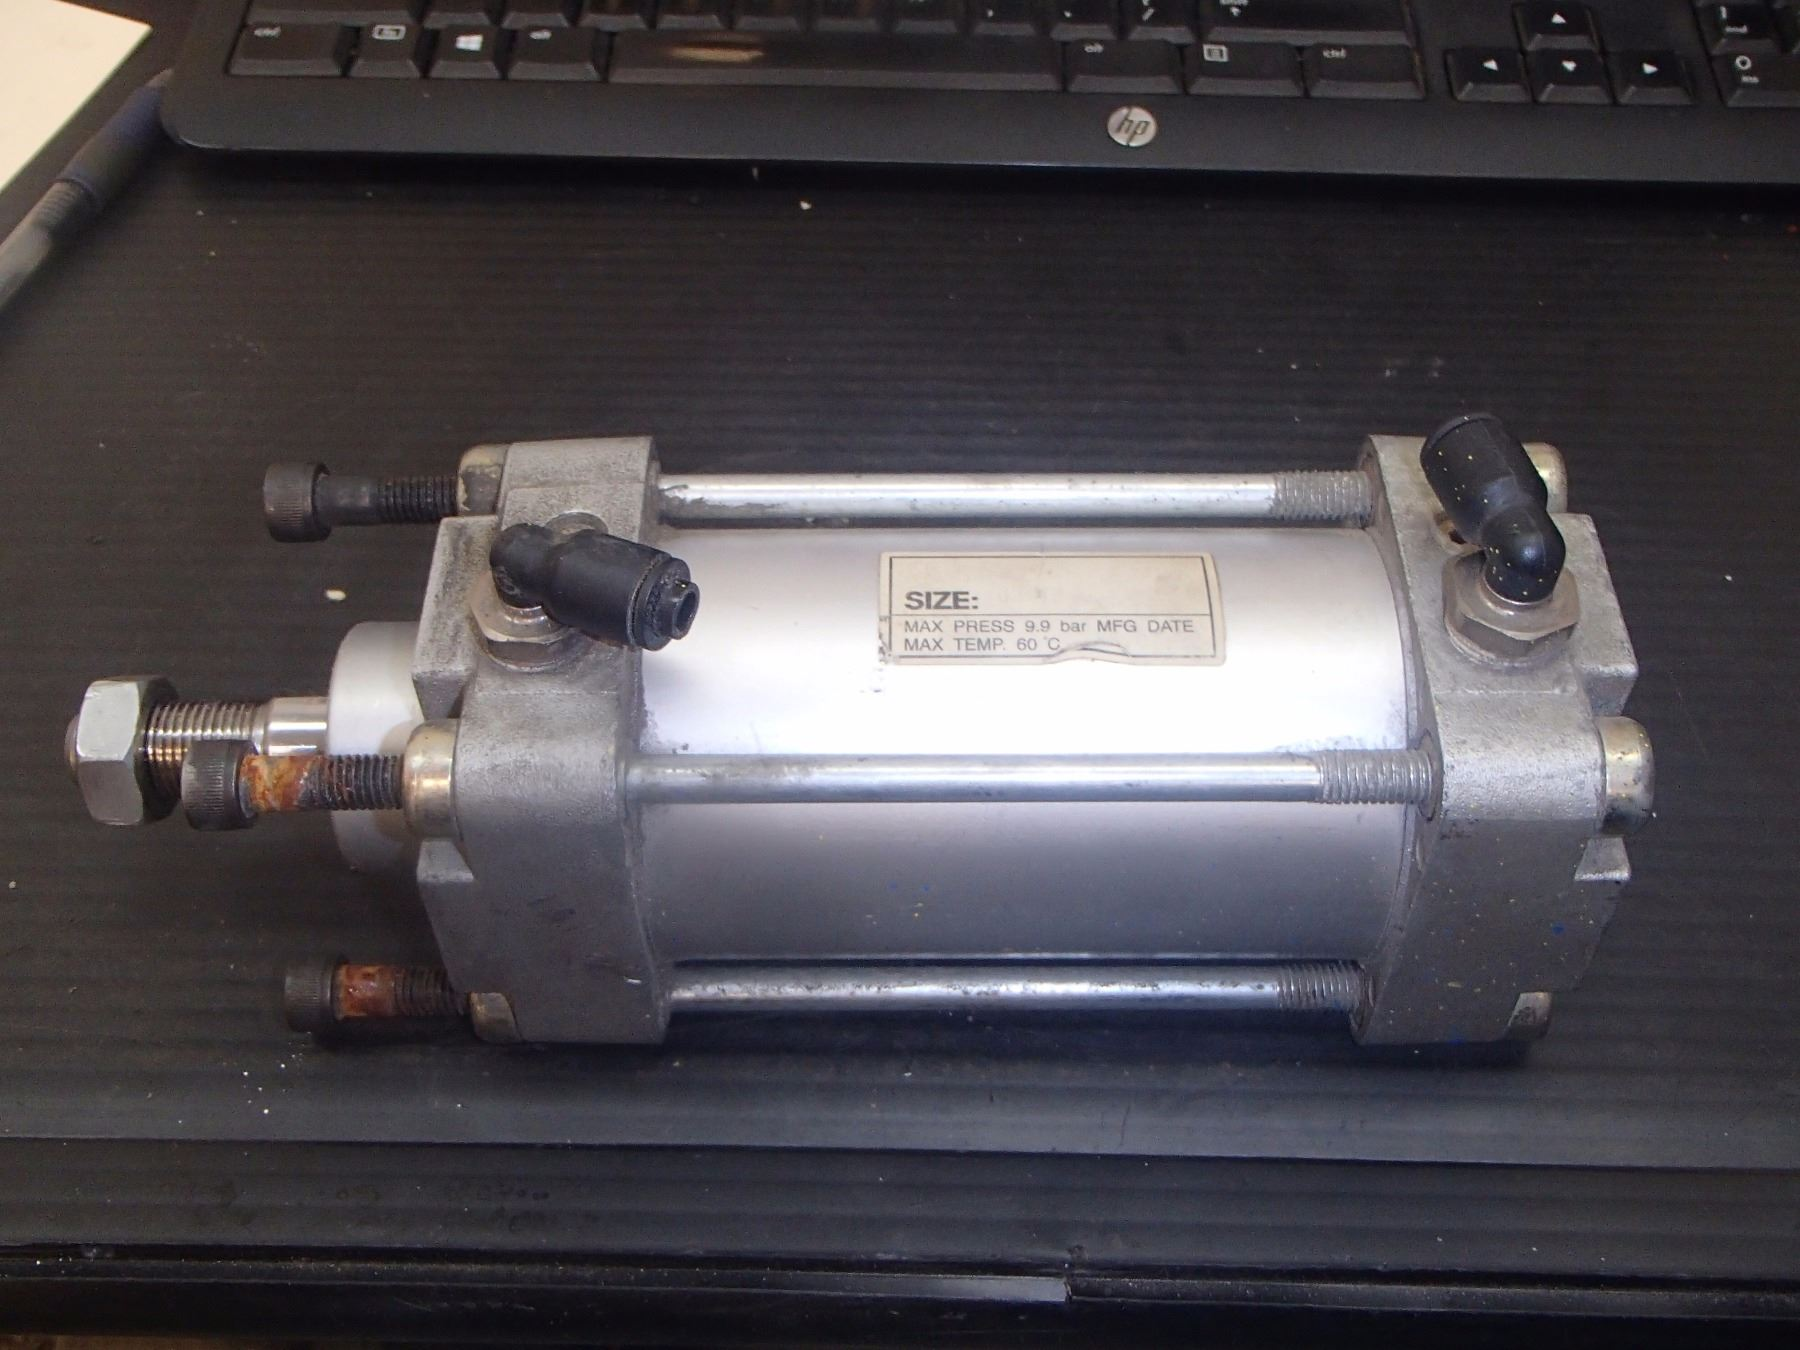 Win-Key Pneumatic Cylinder, Size: 63-75?